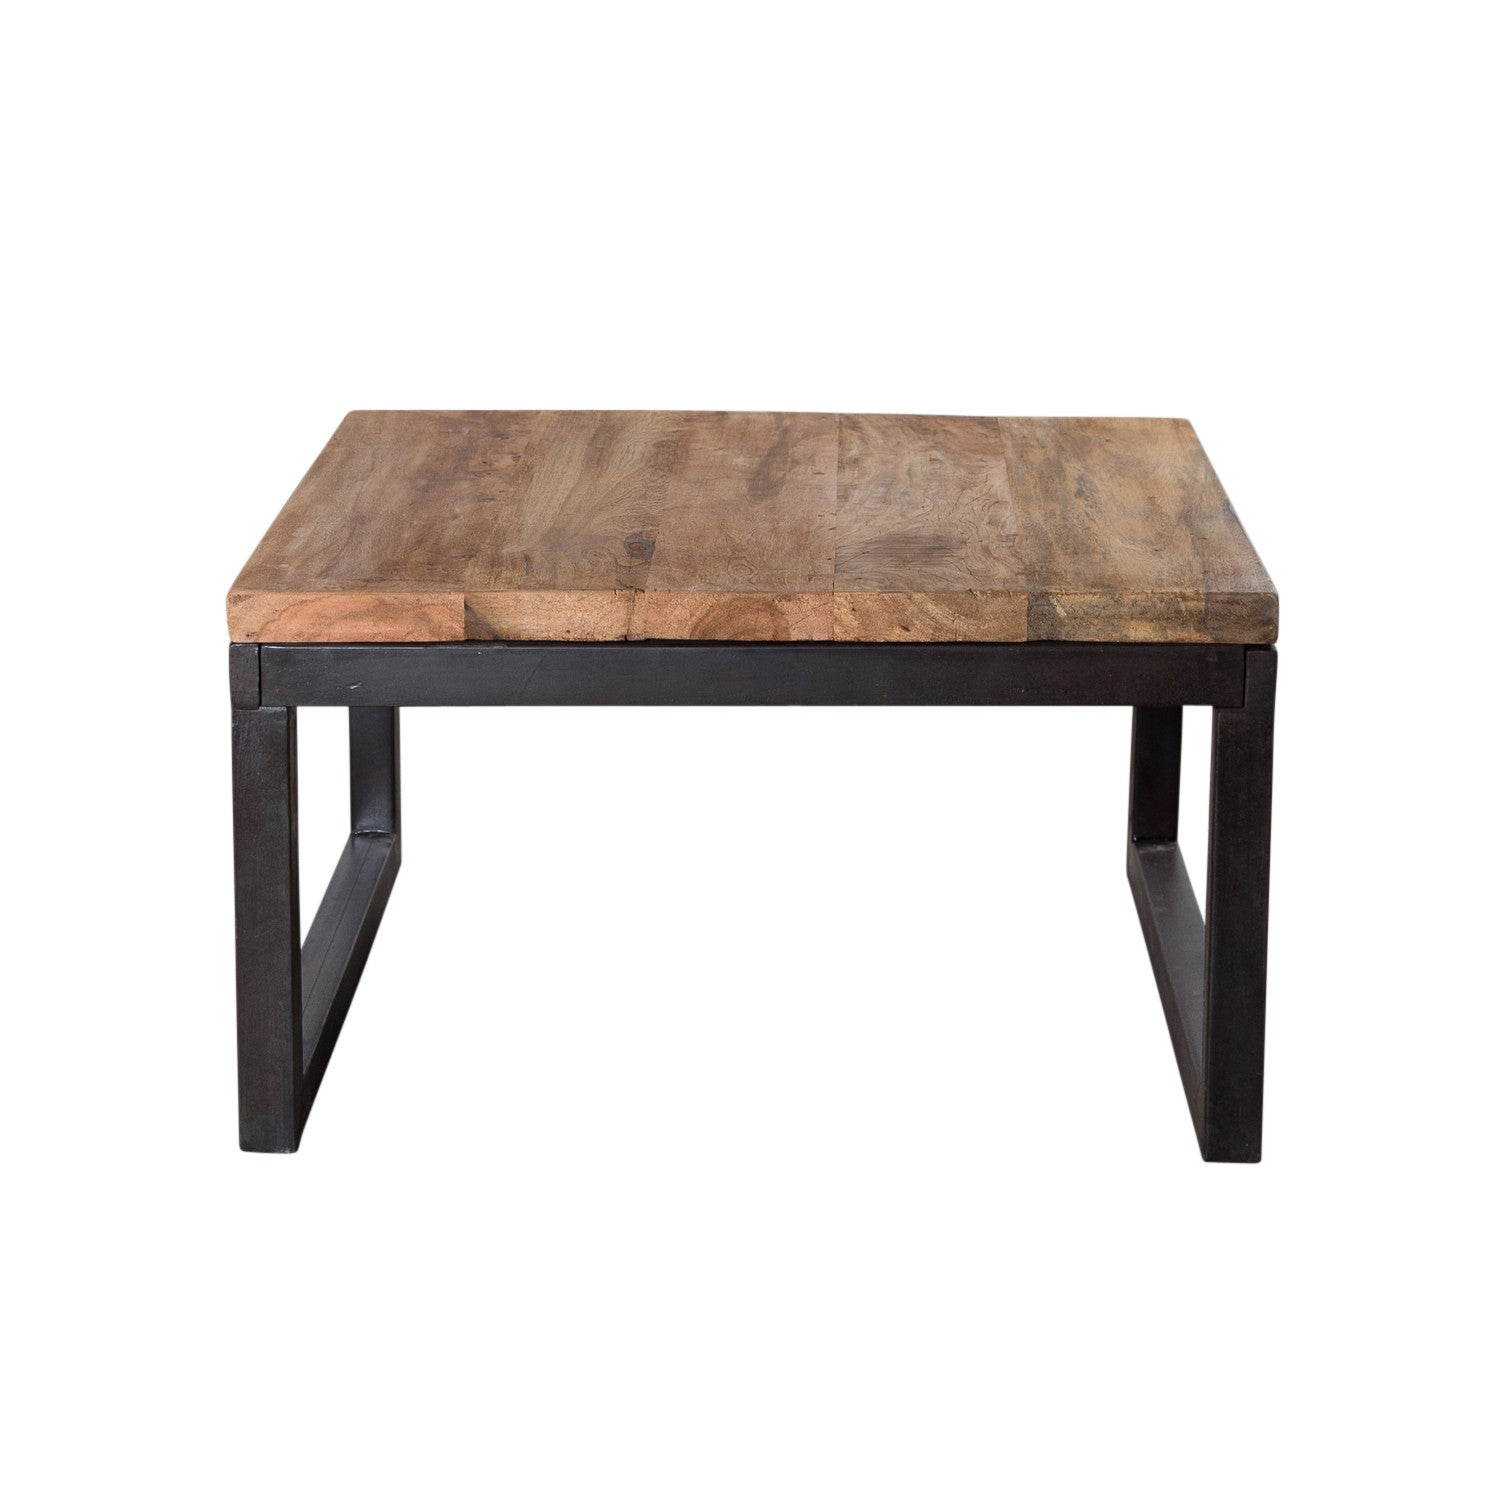 Weathered Iron & Reclaimed Wood Coffee Table The Spotted Door